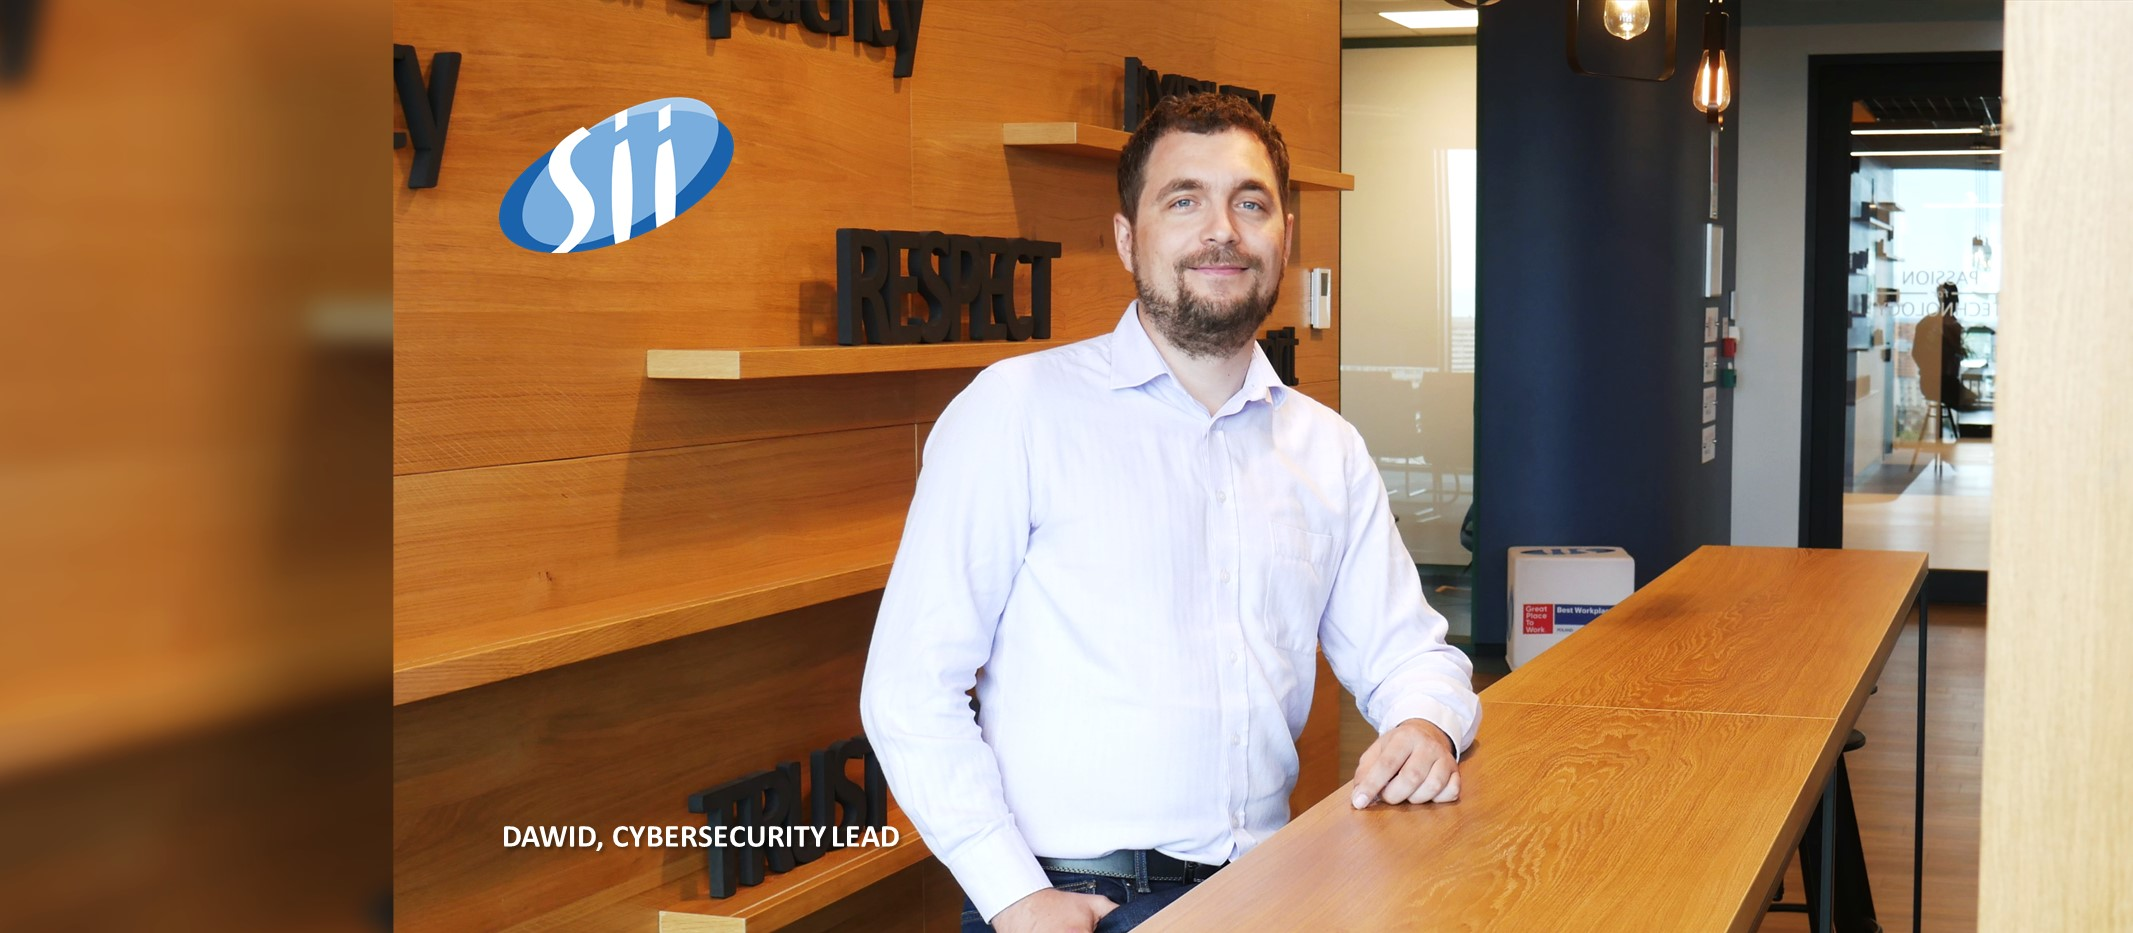 Cybersecurity is a crucial element to every business. Entrust our experts to provide a safe environment for your company